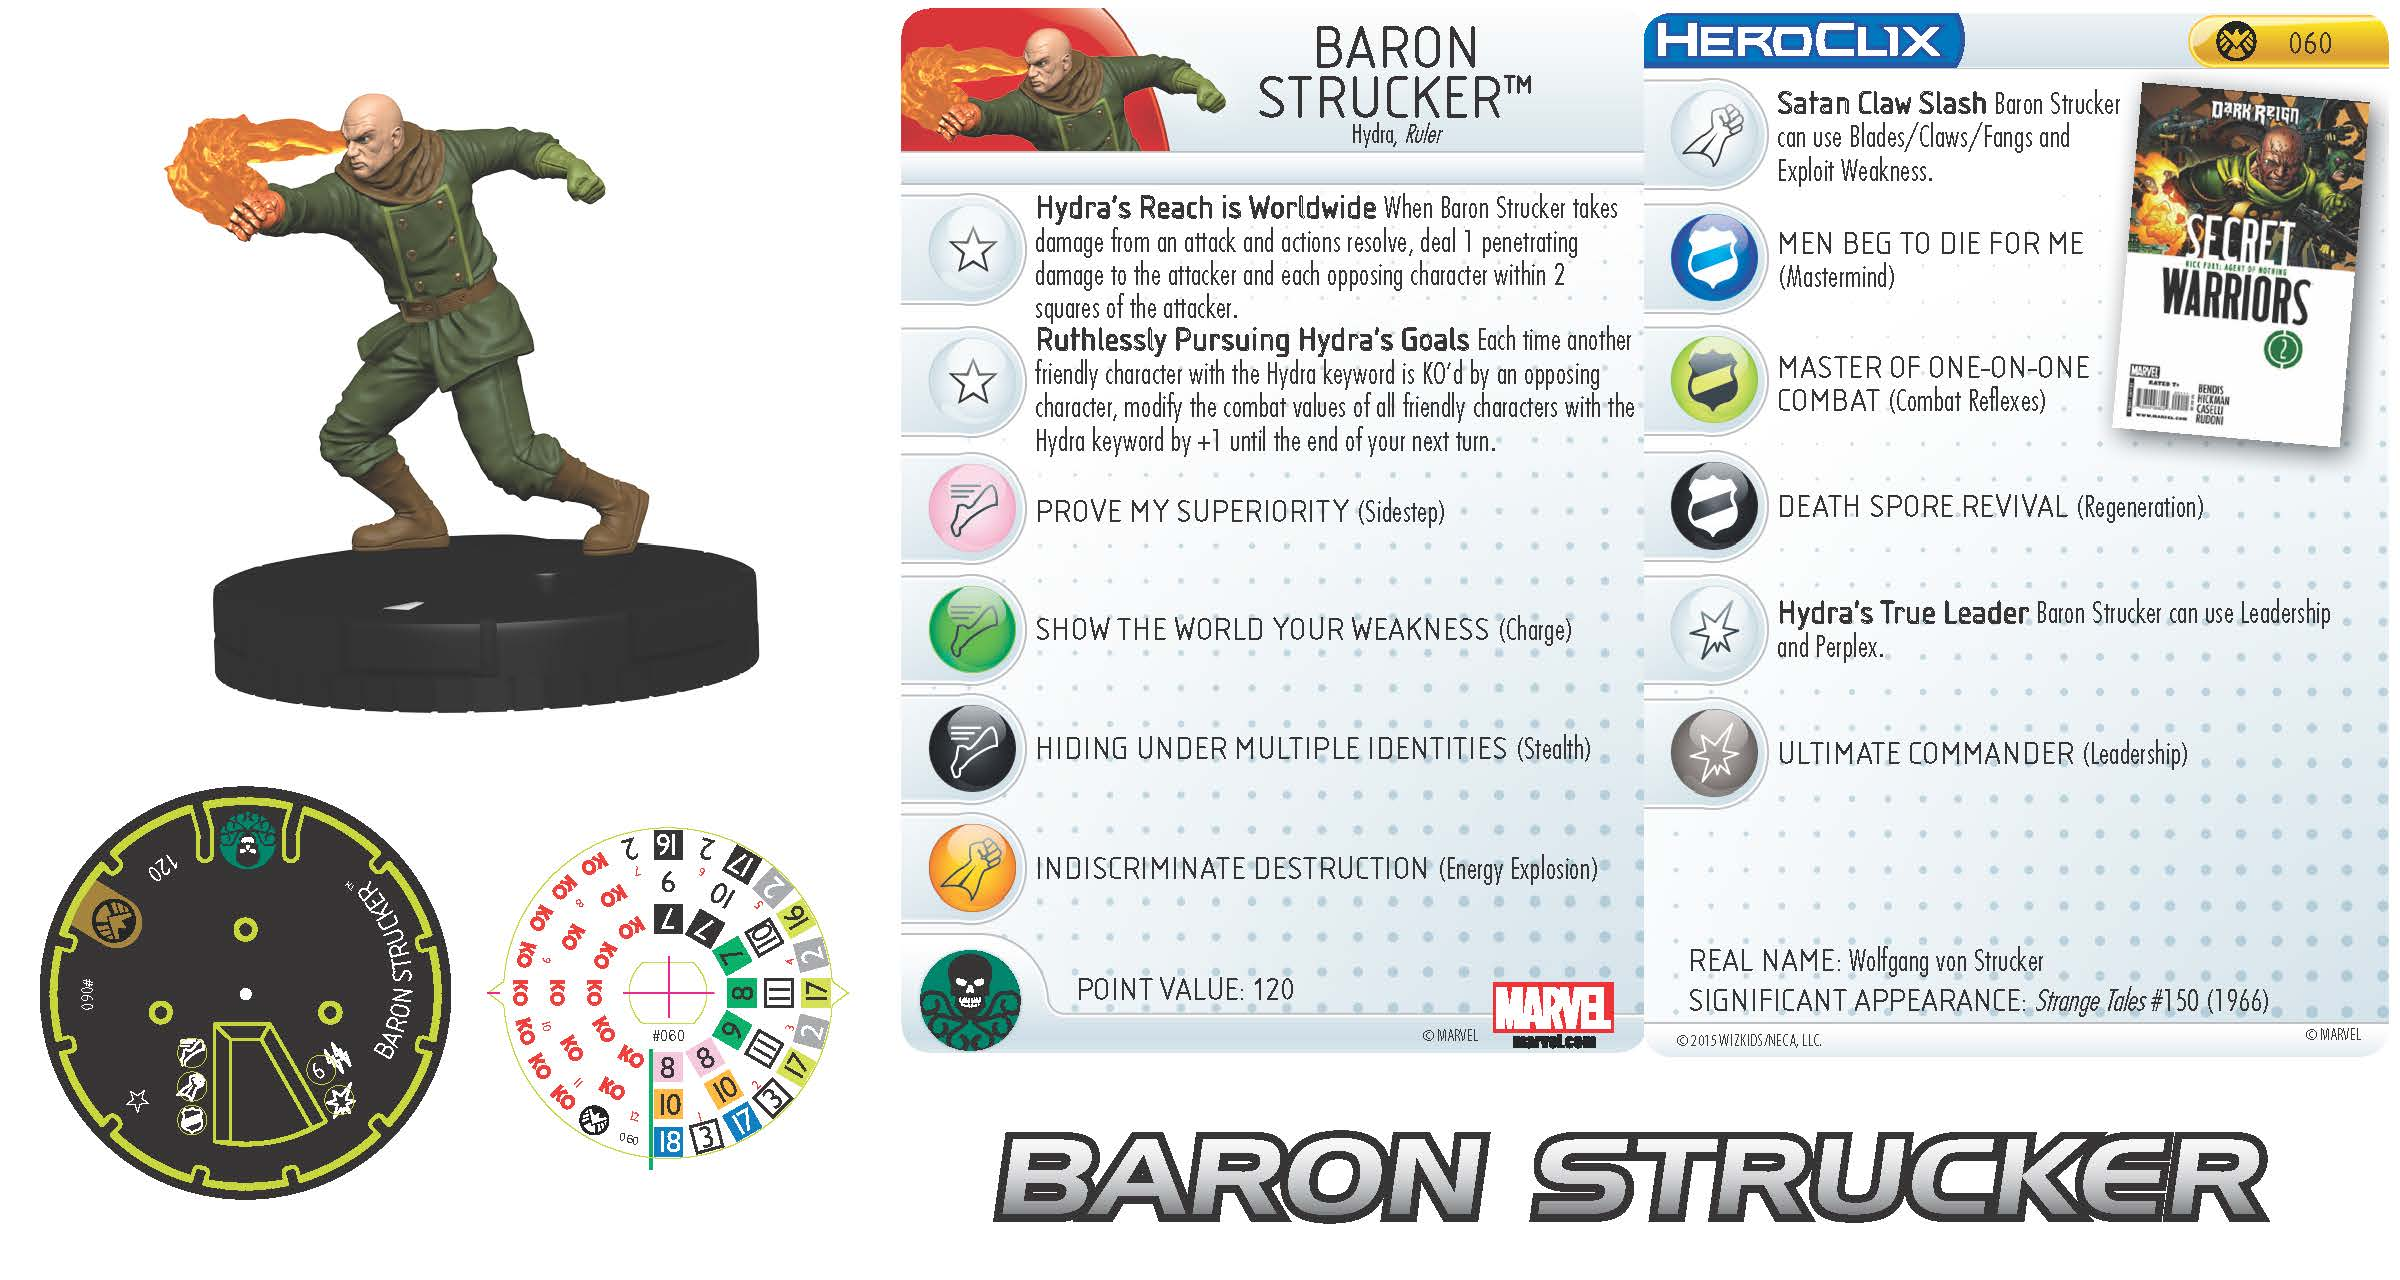 Marvel HeroClix: Nick Fury, Agent of S.H.I.E.L.D. - Baron Strucker